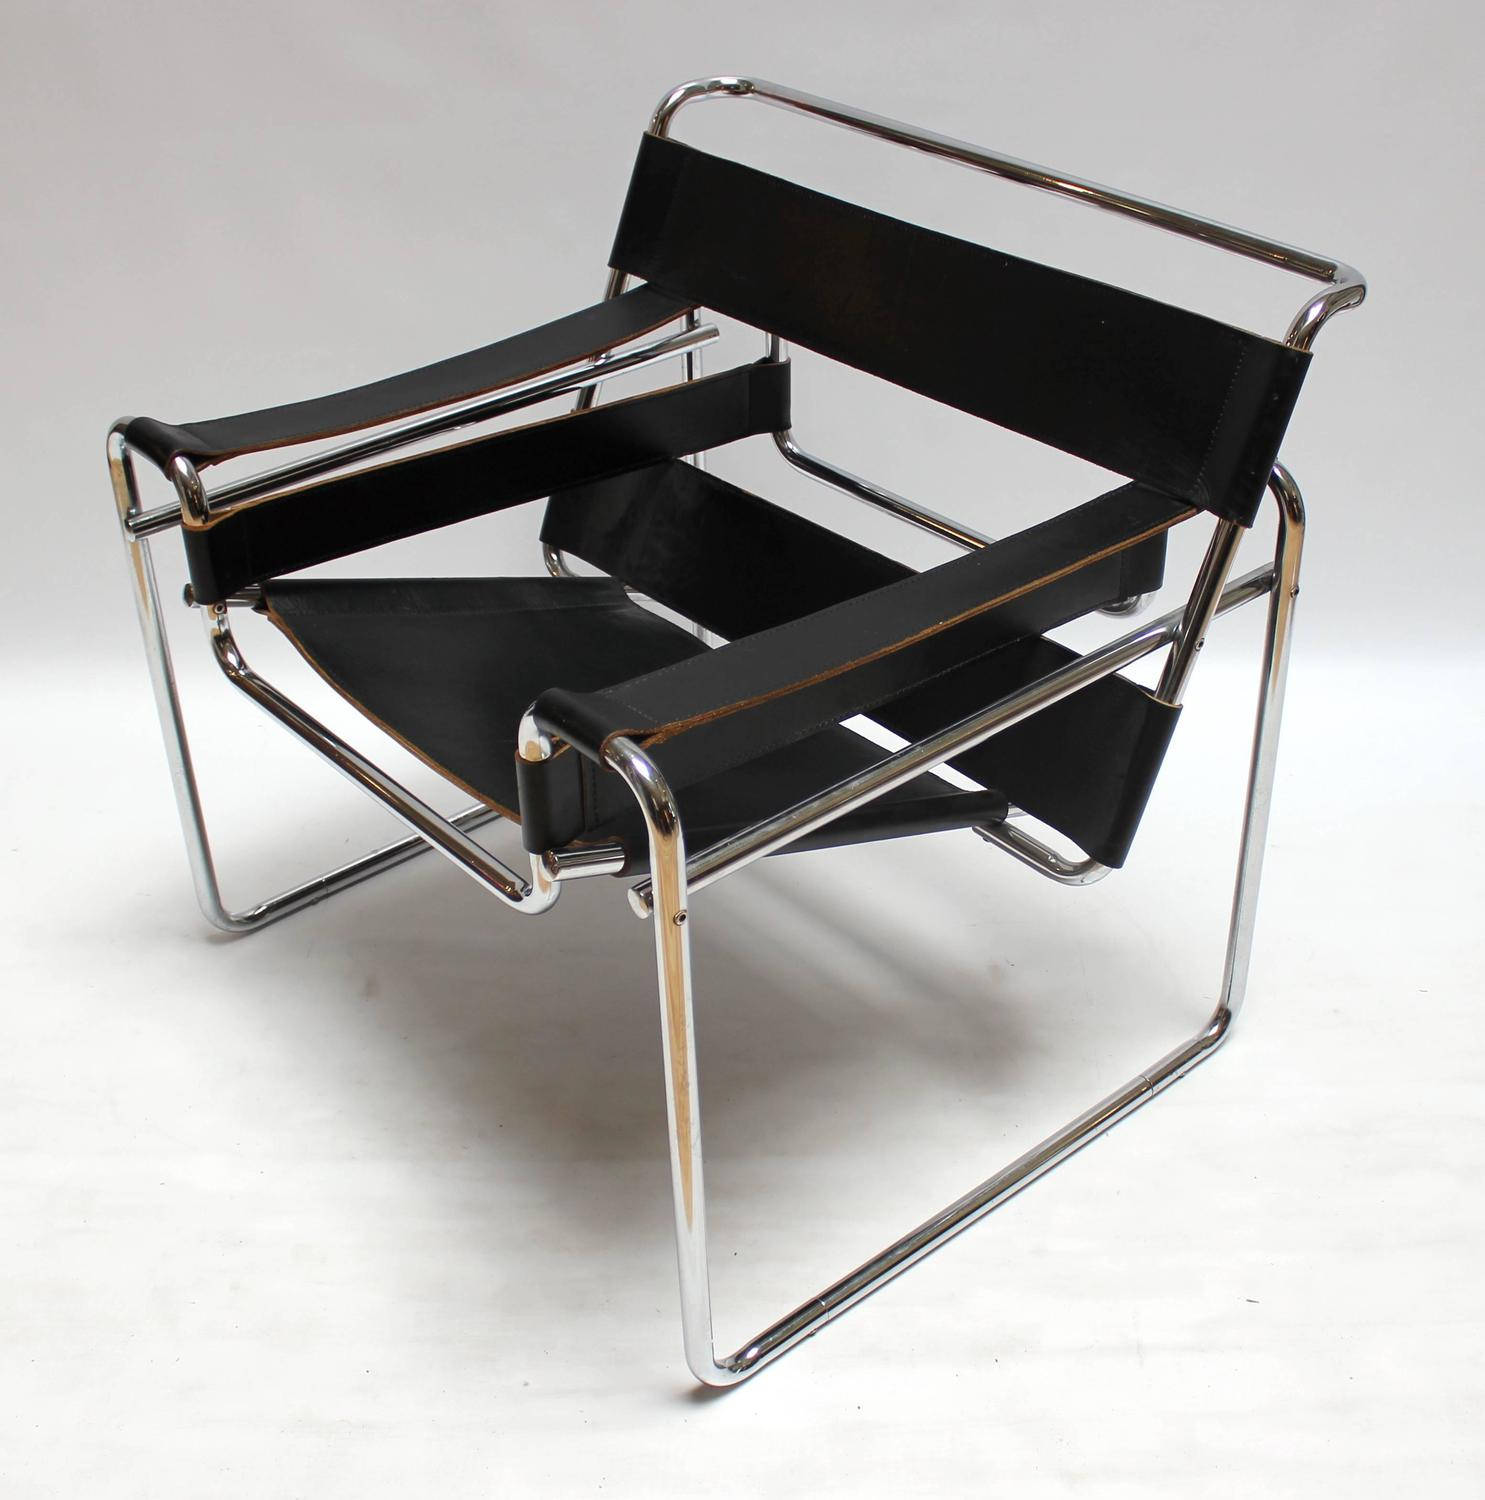 Vintage Chrome And Leather Wassily Chair By Marcel Breuer For Knoll At 1stdibs